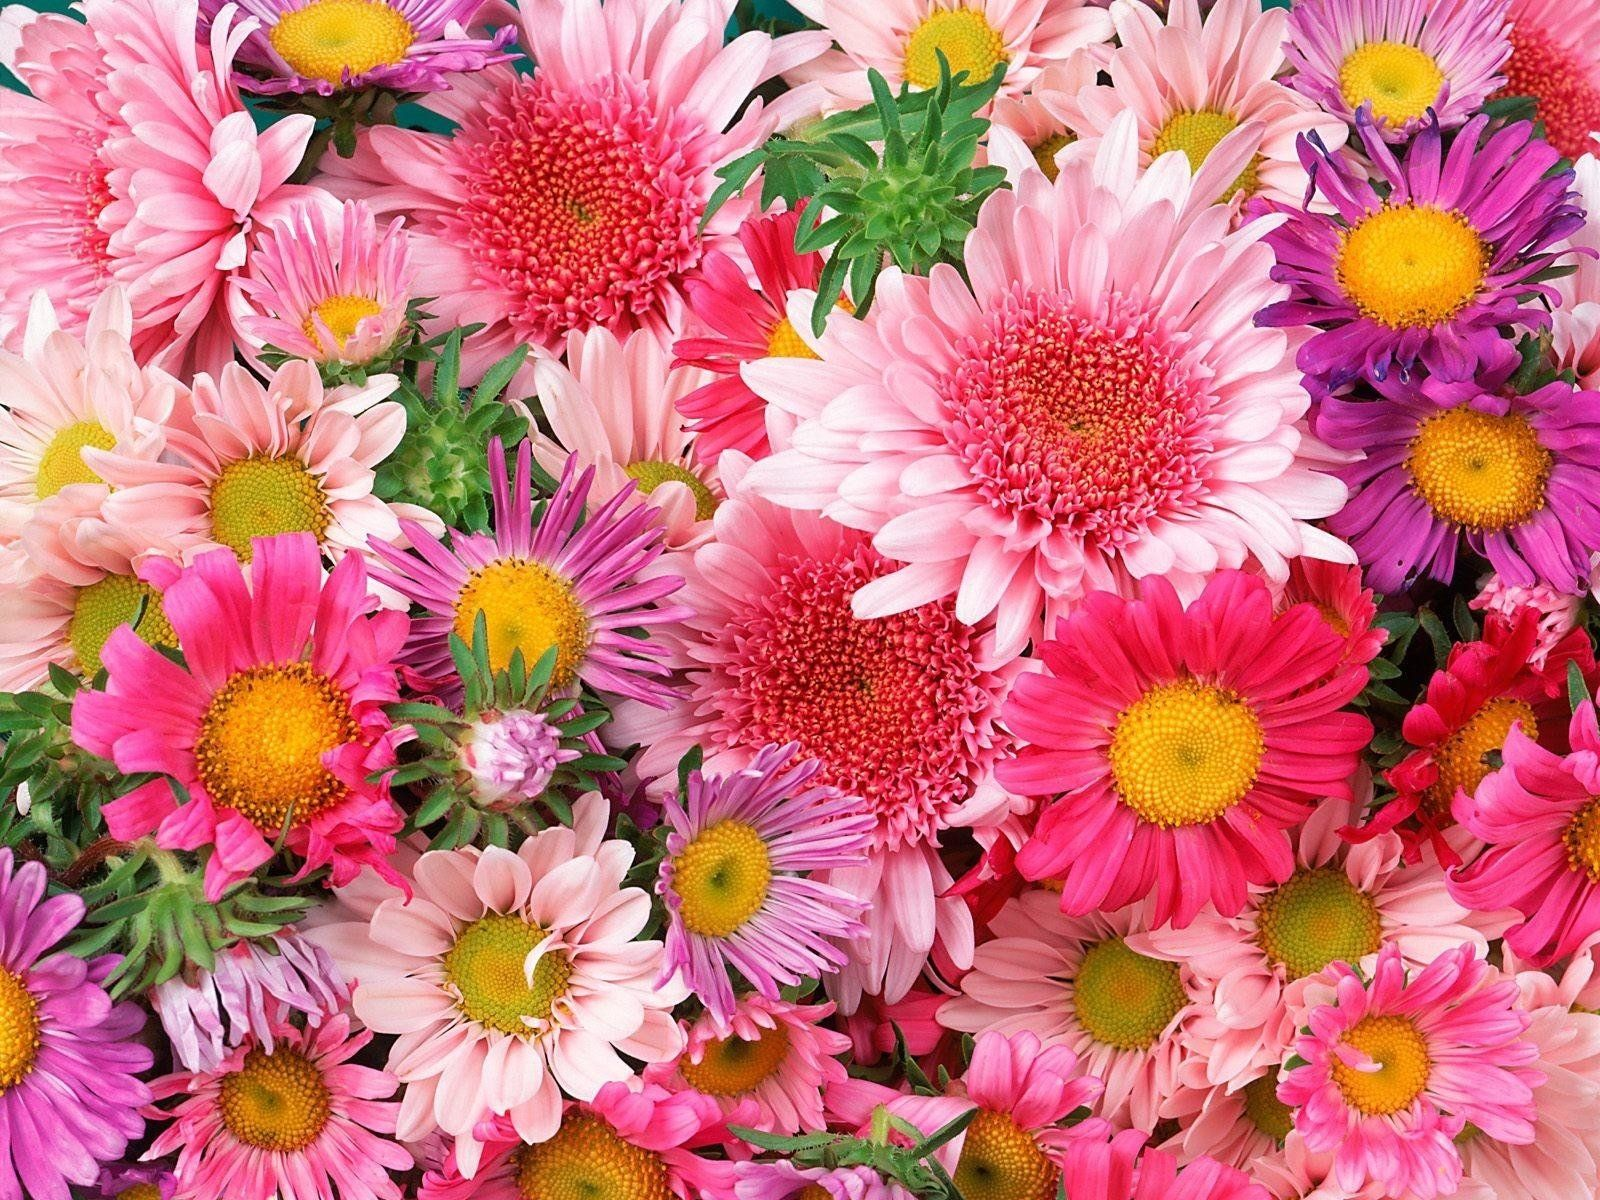 Daisy wallpaper daisy wallpapers and photos in high hd wallpapers daisy wallpaper daisy wallpapers and photos in high hot pink flowers spring flowers pictures mightylinksfo